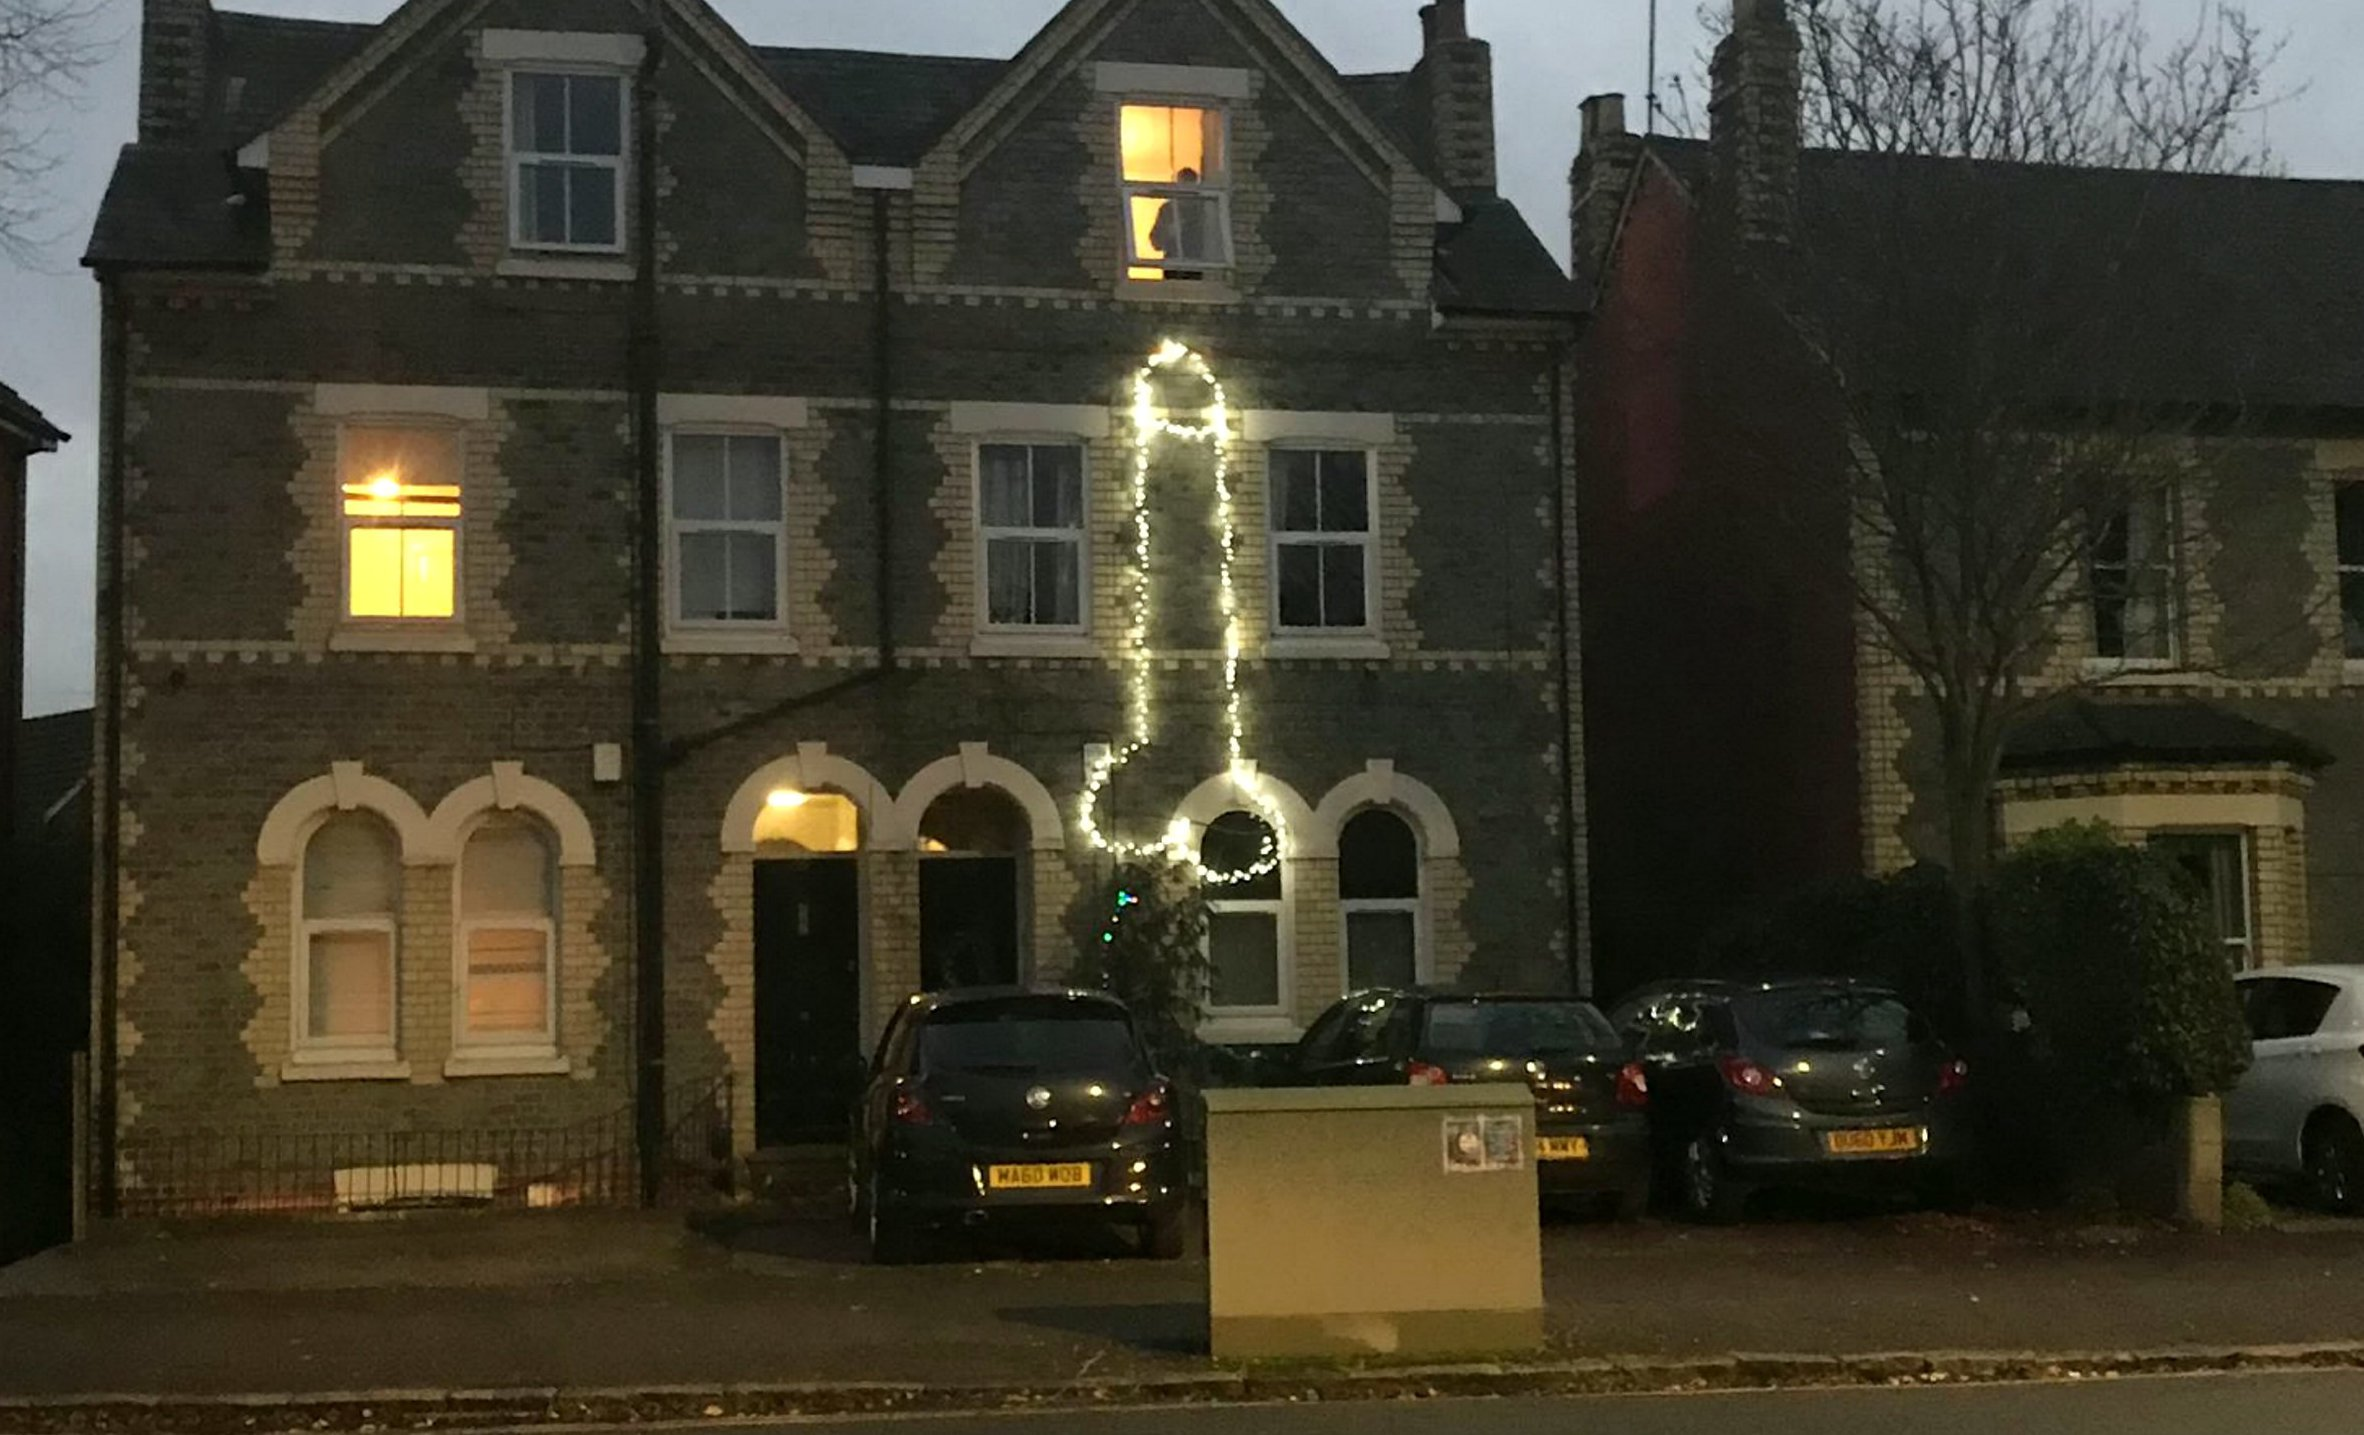 The Christmas lights ?Penis? that has shocked residents on a street on Reading,Berks..See SWNS story SWCAlights. Horrified residents have spoken out after neighbours decorated the outside of their home with festive lights- in the shape of a giant PENIS. The large light display appeared at the front of a home on a quiet residential street in Reading, Berks., yesterday (Sun).It is believed to have been erected by a group of students living in the house.Stephen Bailey-Todd, 53 who lives nearby was in 'complete disbelief' when he spotted the bright shining penis while out on a walk.